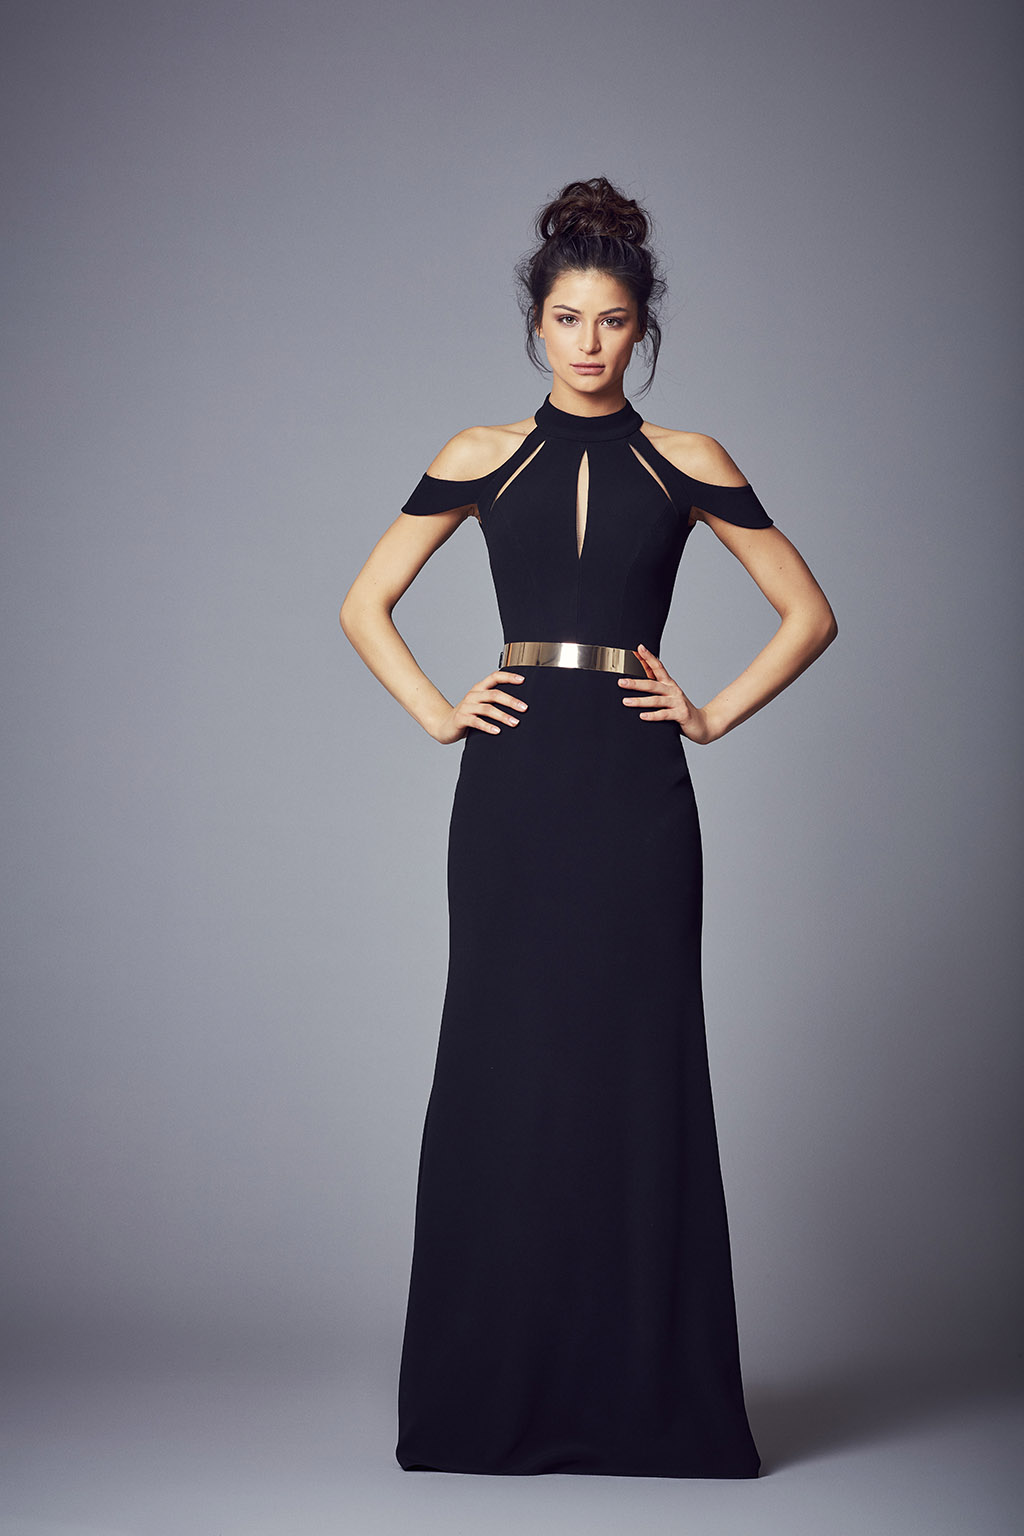 Designer Evening Wear - Gown Designs - Suzanne Neville